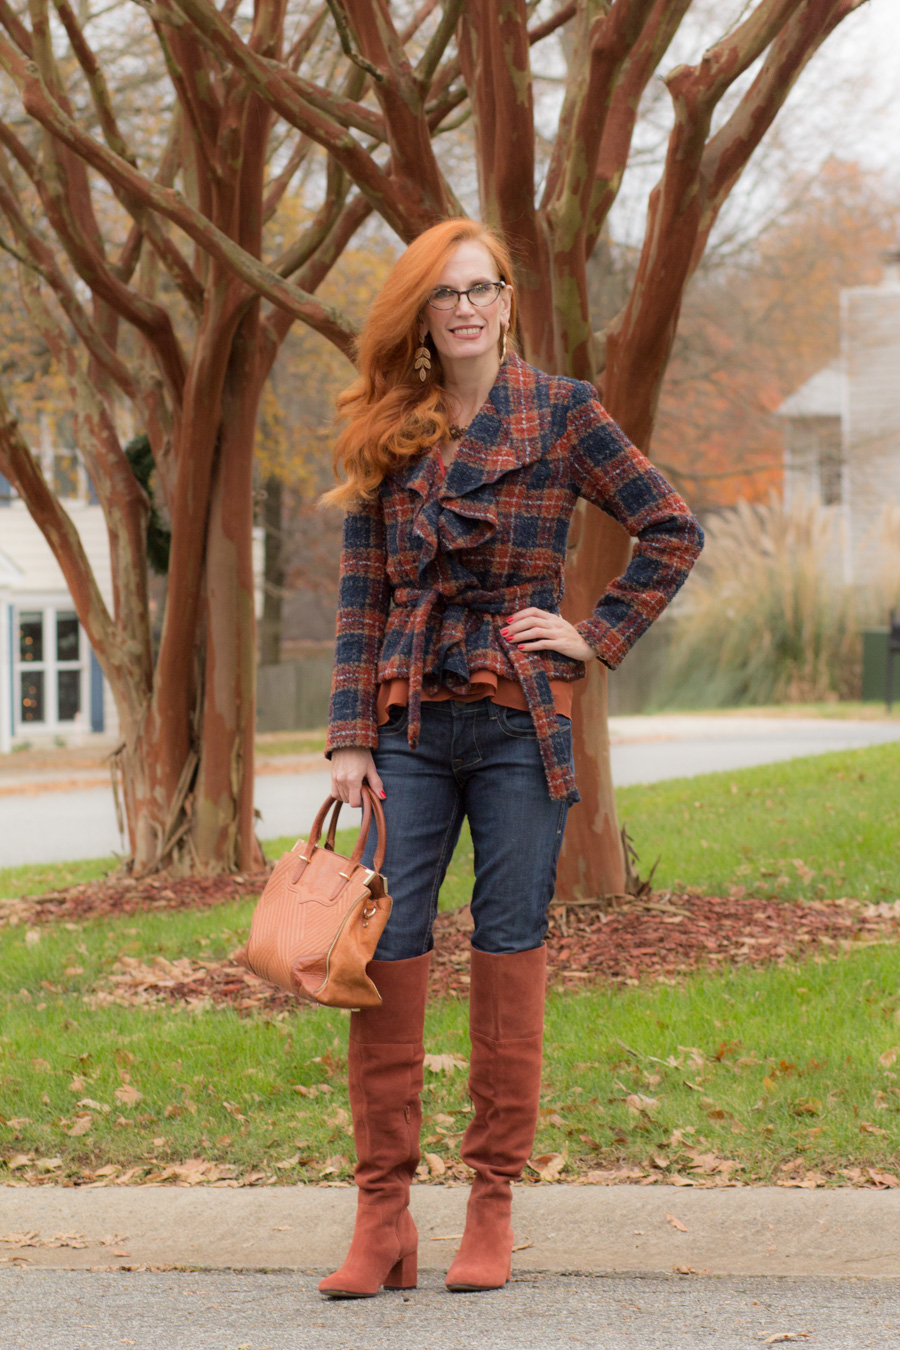 85e52caeaf3 Plaid Blazer + Wearing Over the Knee Boots Over 40 - Elegantly ...